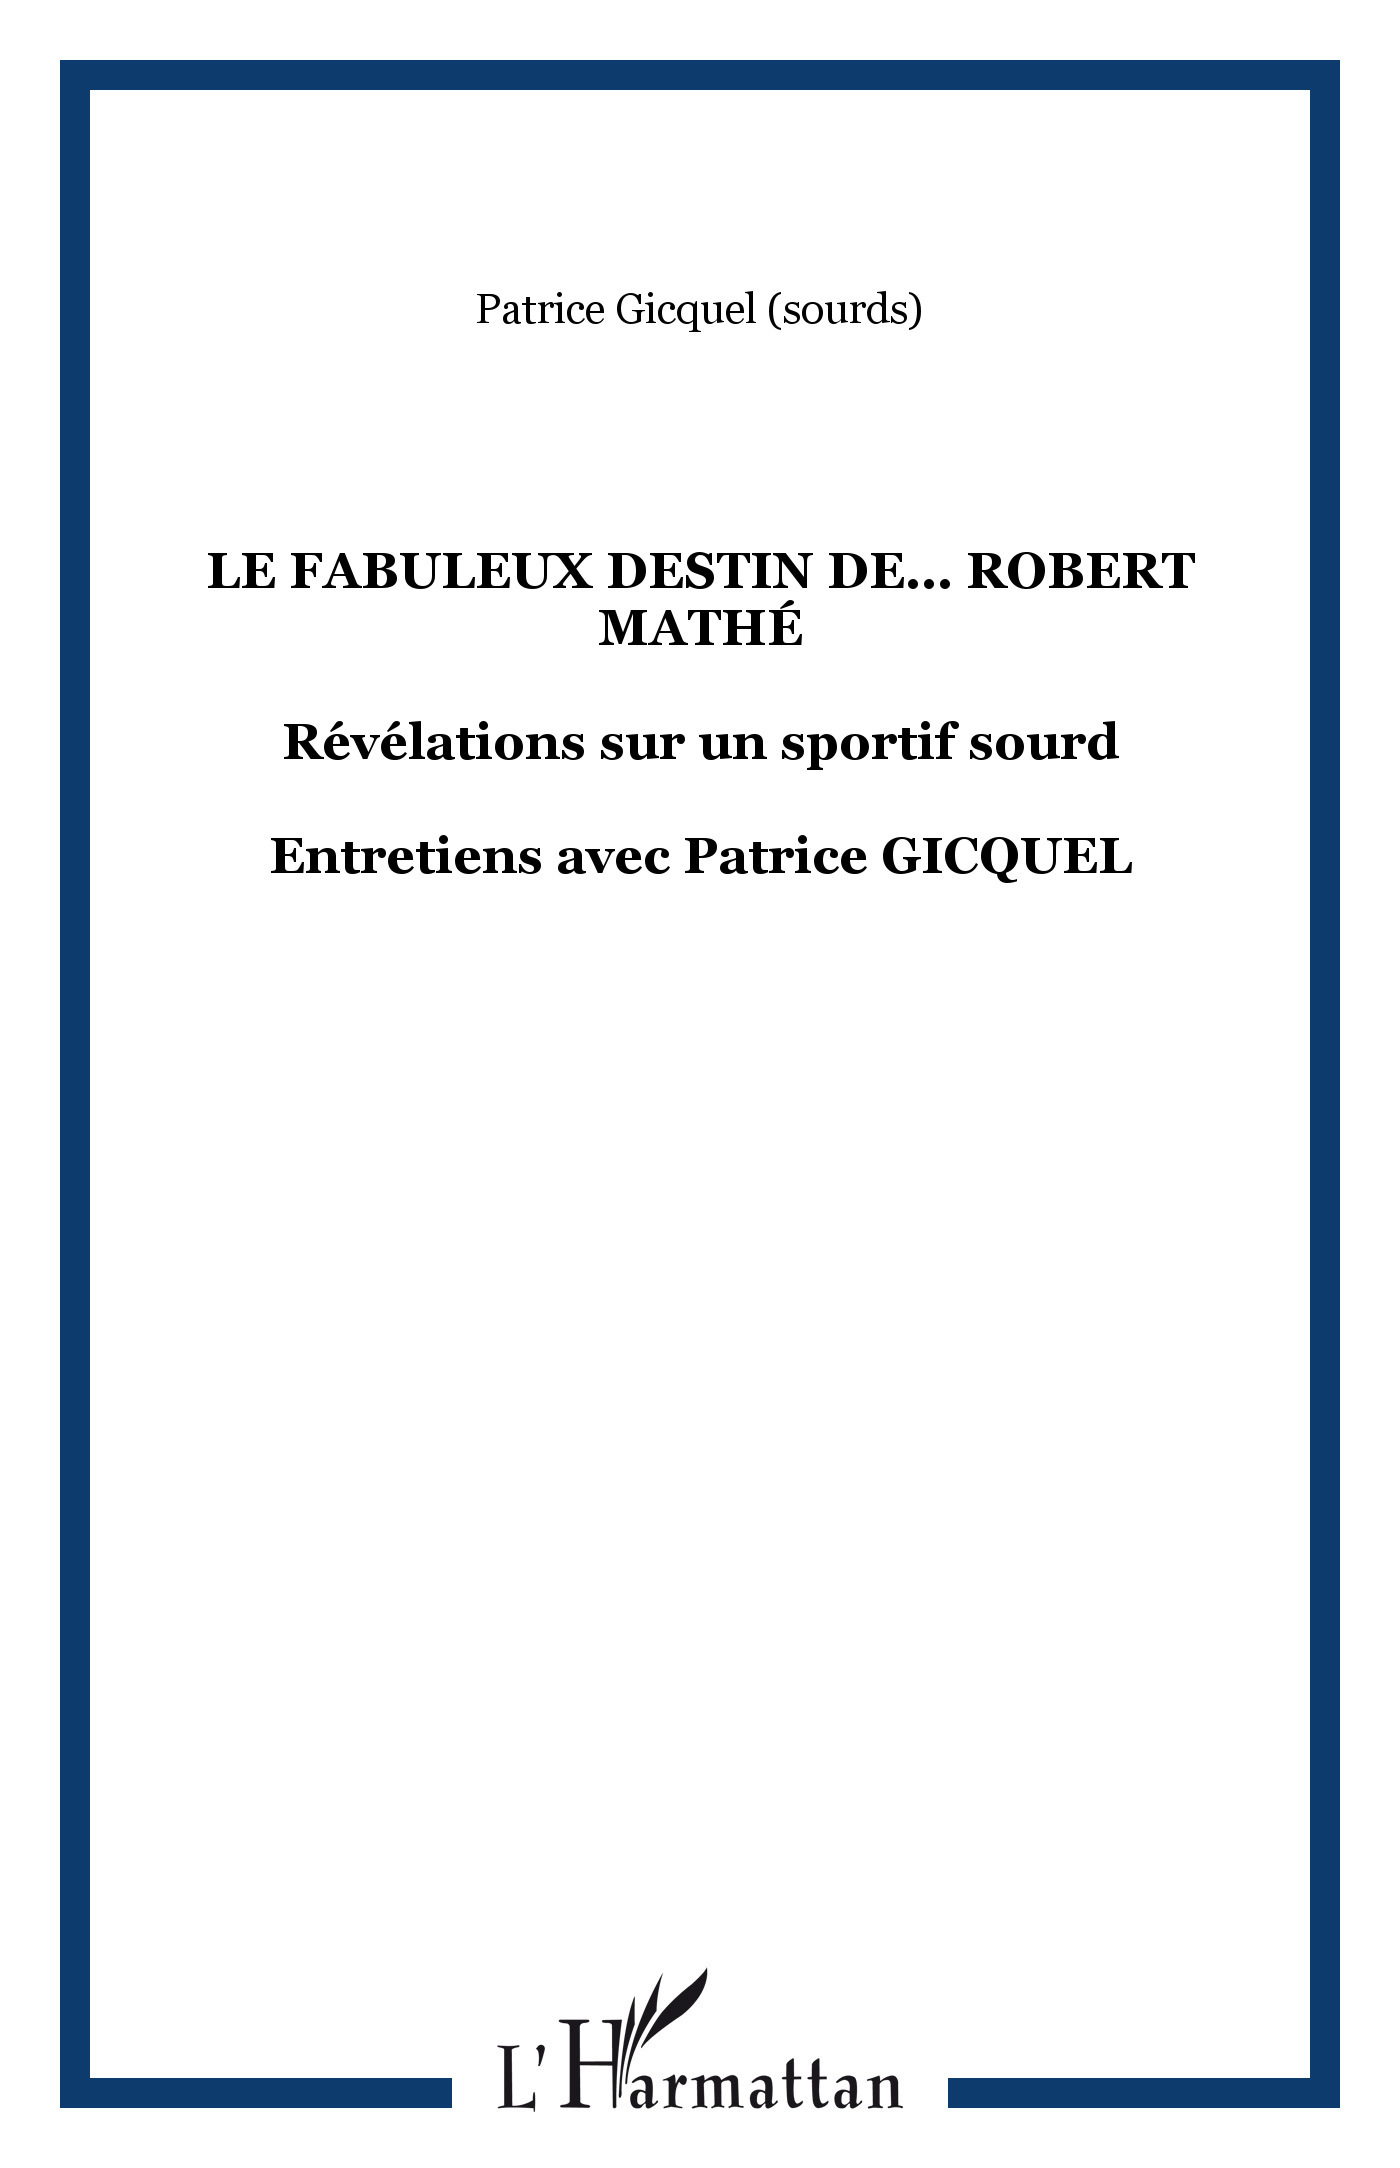 FABULEUX DESTIN DE ROBERT MATHE